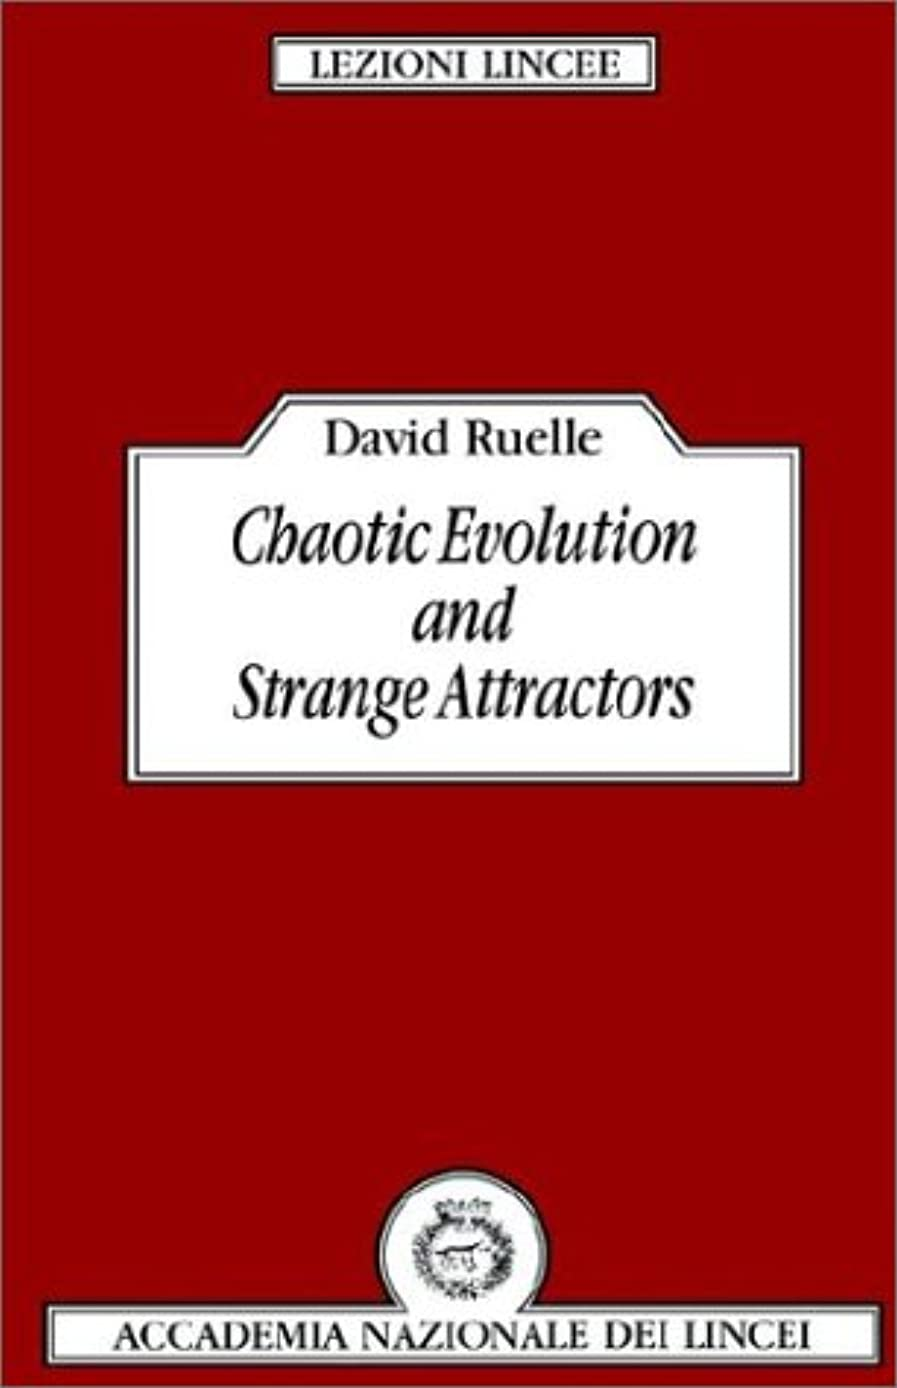 廃棄する異なるパントリーChaotic Evolution and Attractors (Lezioni Lincee)